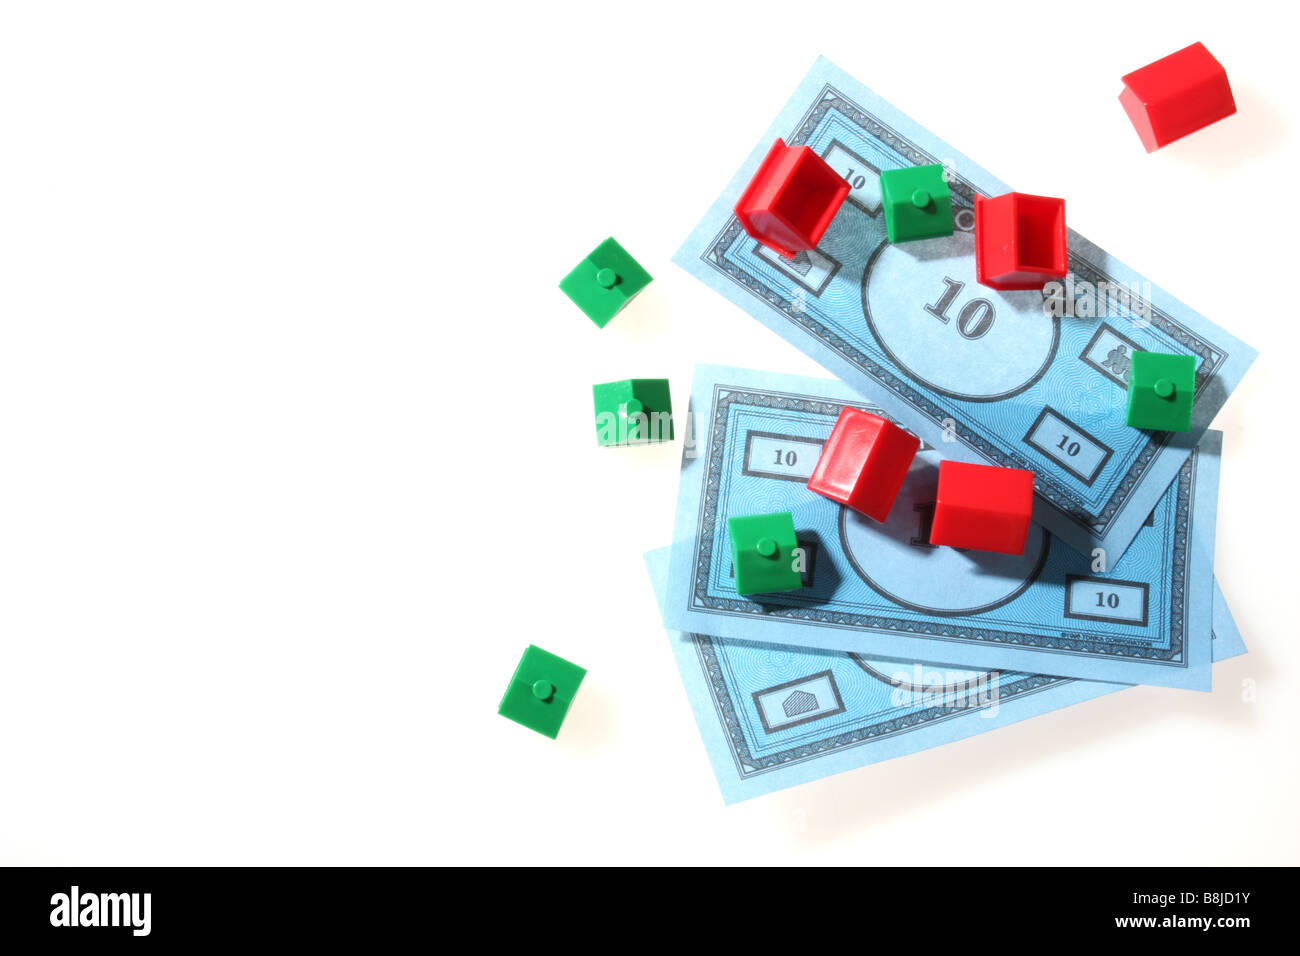 Monopoly houses and hotels on top of toy bank notes - Stock Image